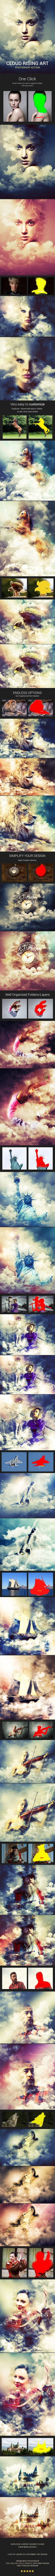 Cloud Rising Art Photoshop Action  #artwork #digital design • Download ➝ https://graphicriver.net/item/cloud-rising-art-photoshop-action/18180124?ref=pxcr